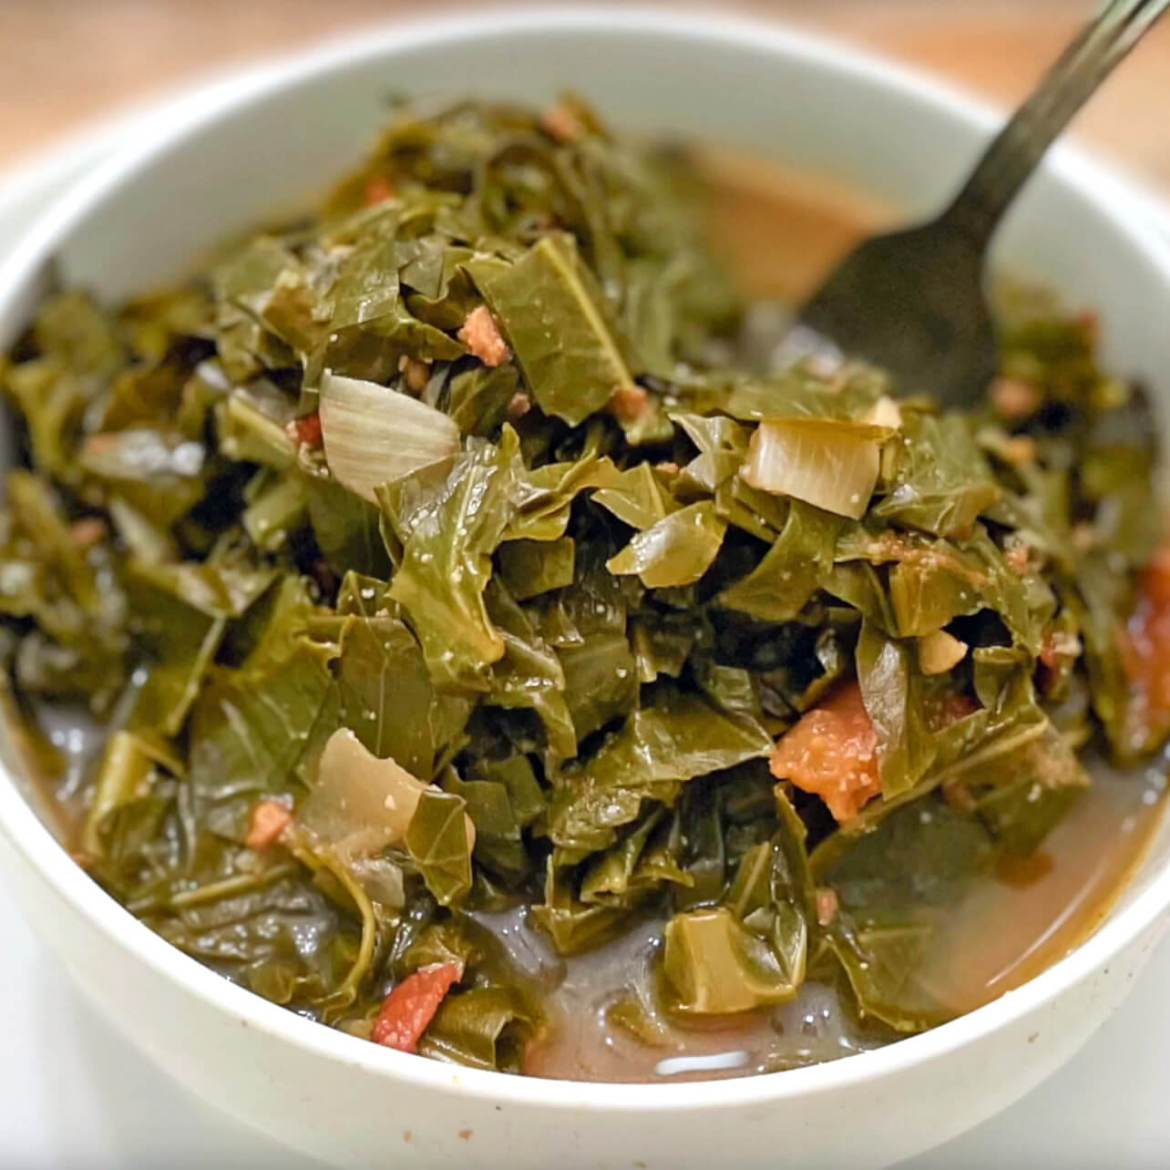 collard greens are one of the 21 Best Vegan Christmas Dinner Recipes